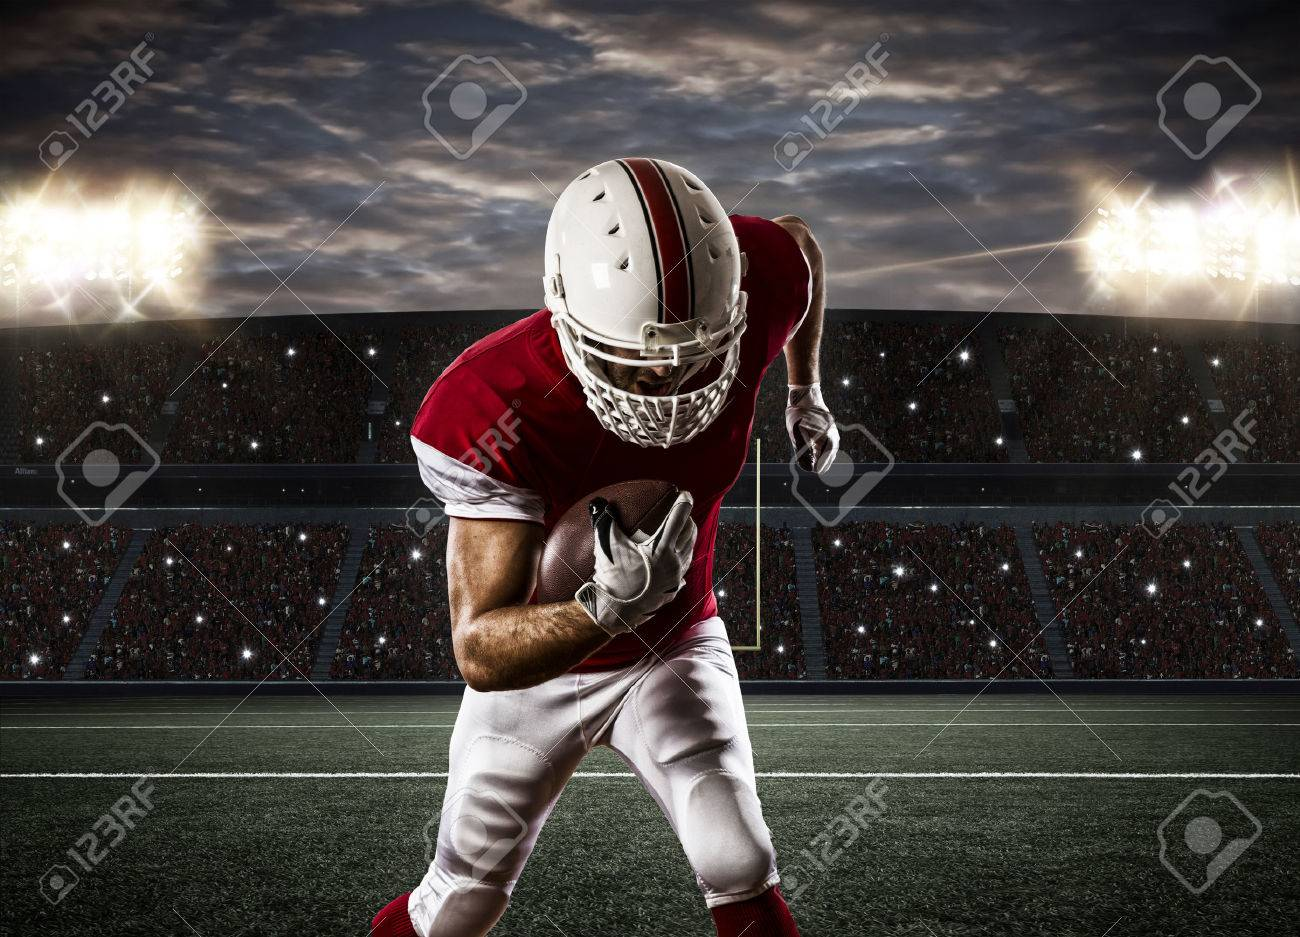 Football Player with a red uniform Running on a Stadium. - 35218425